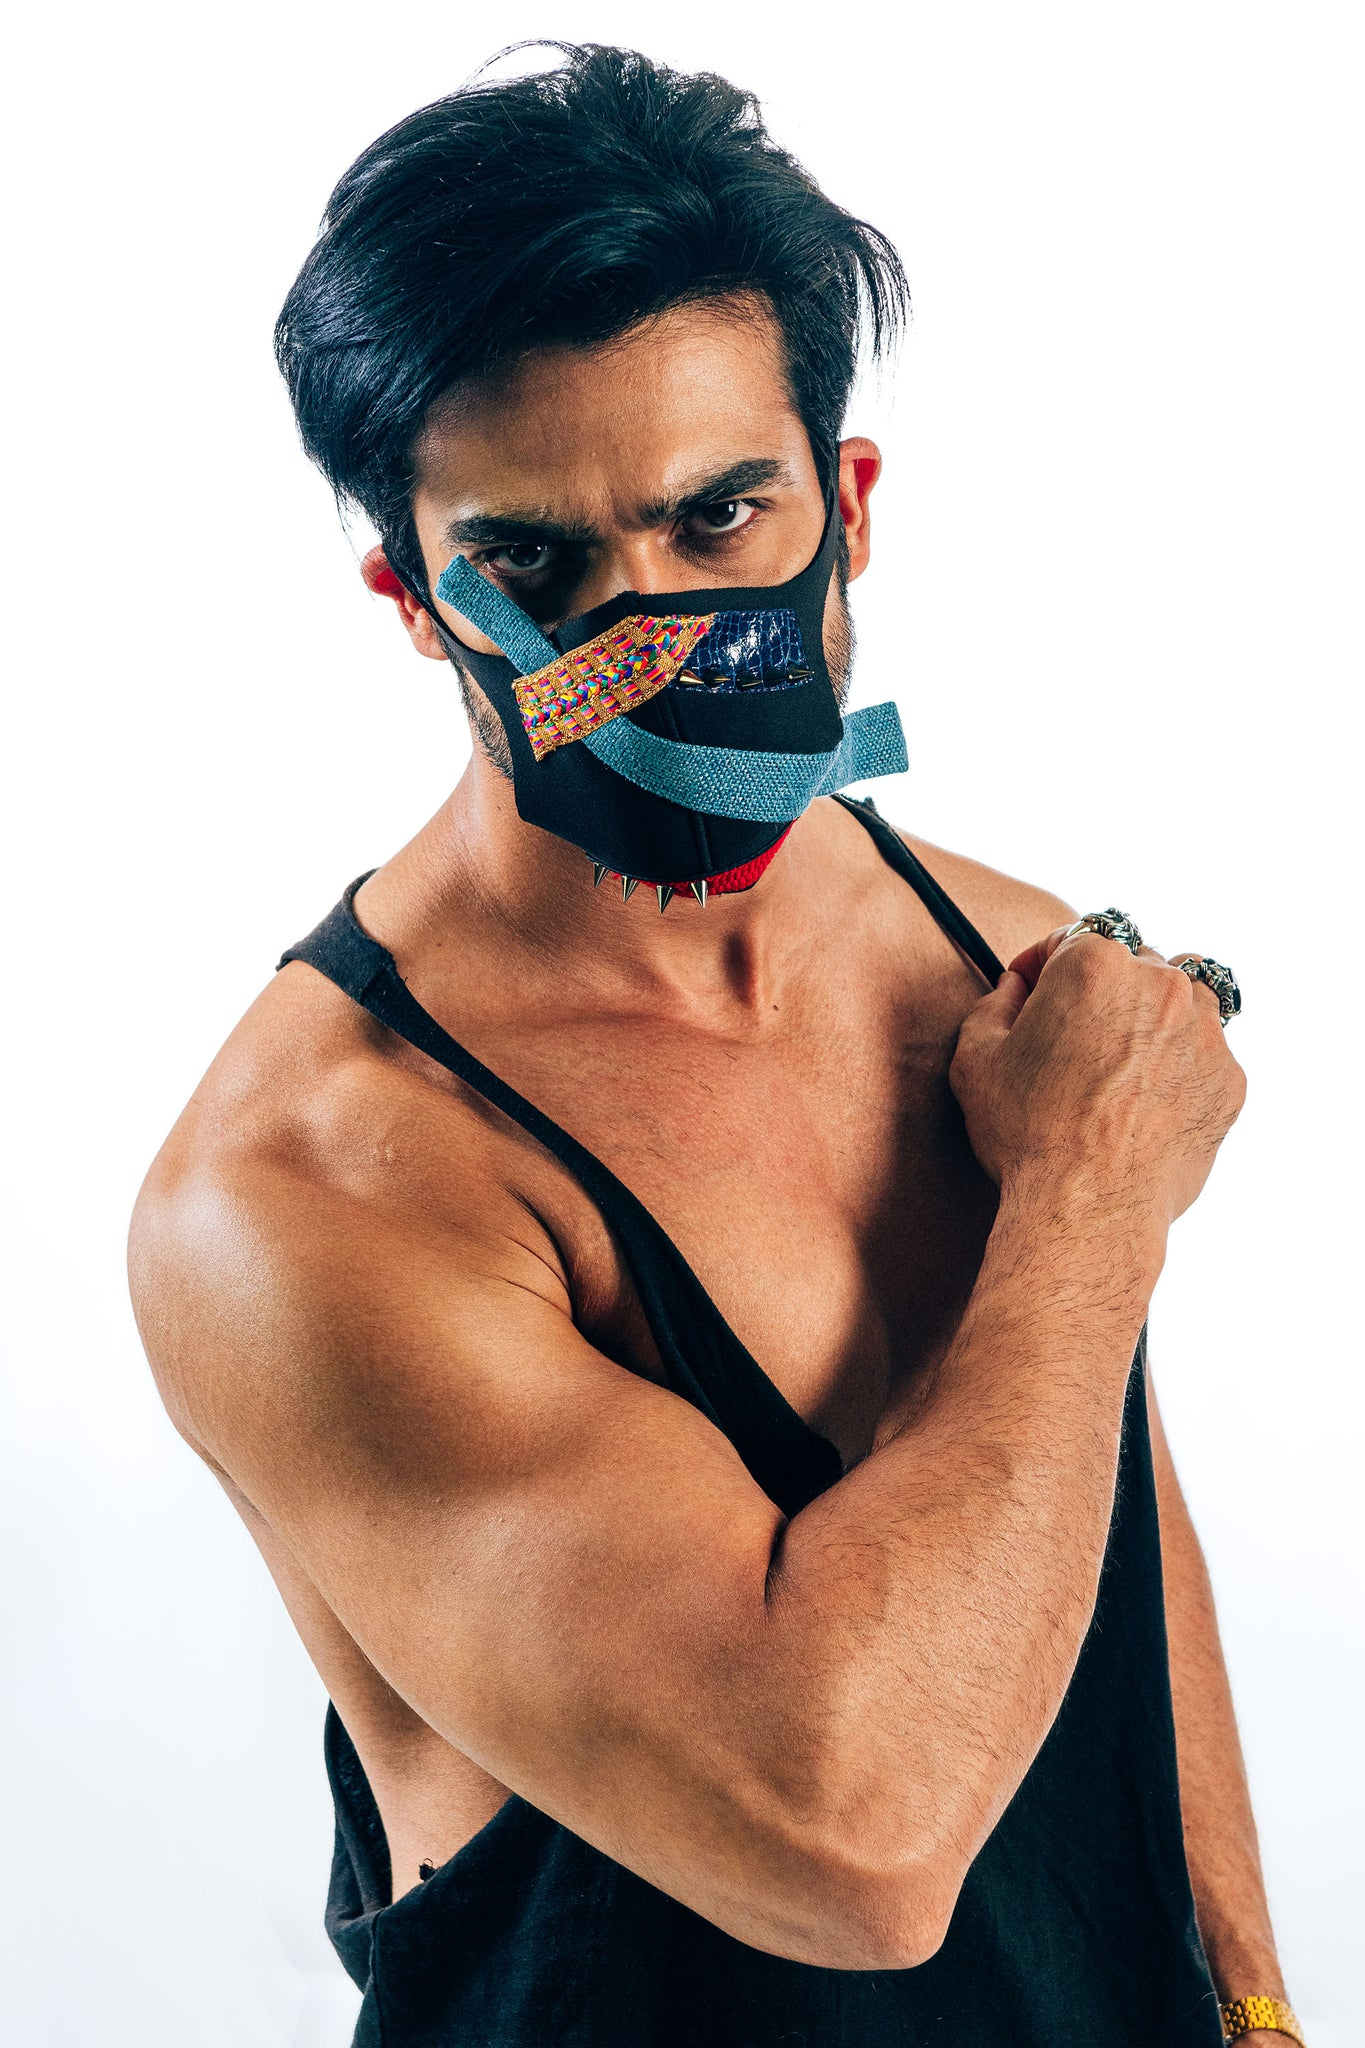 VIR Unisex Mask Fashion Accessory #033